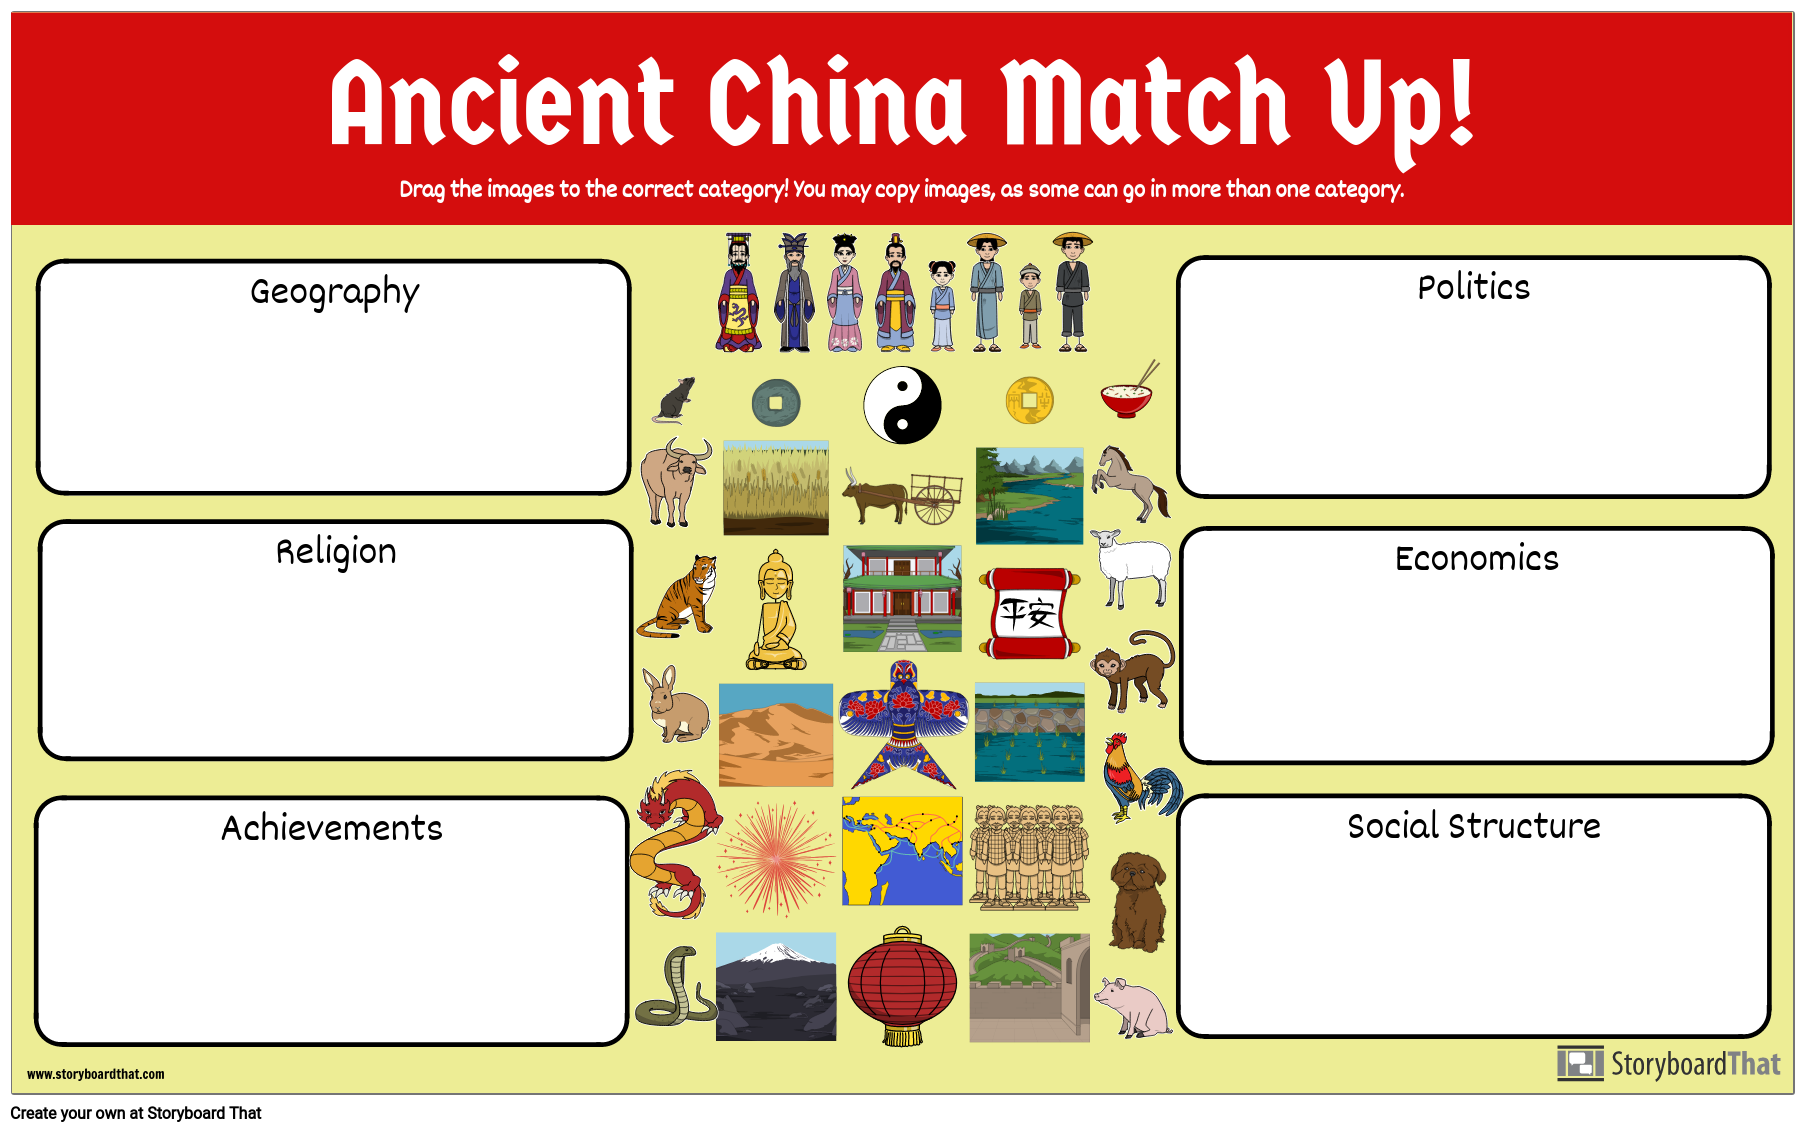 Ancient China Match Up